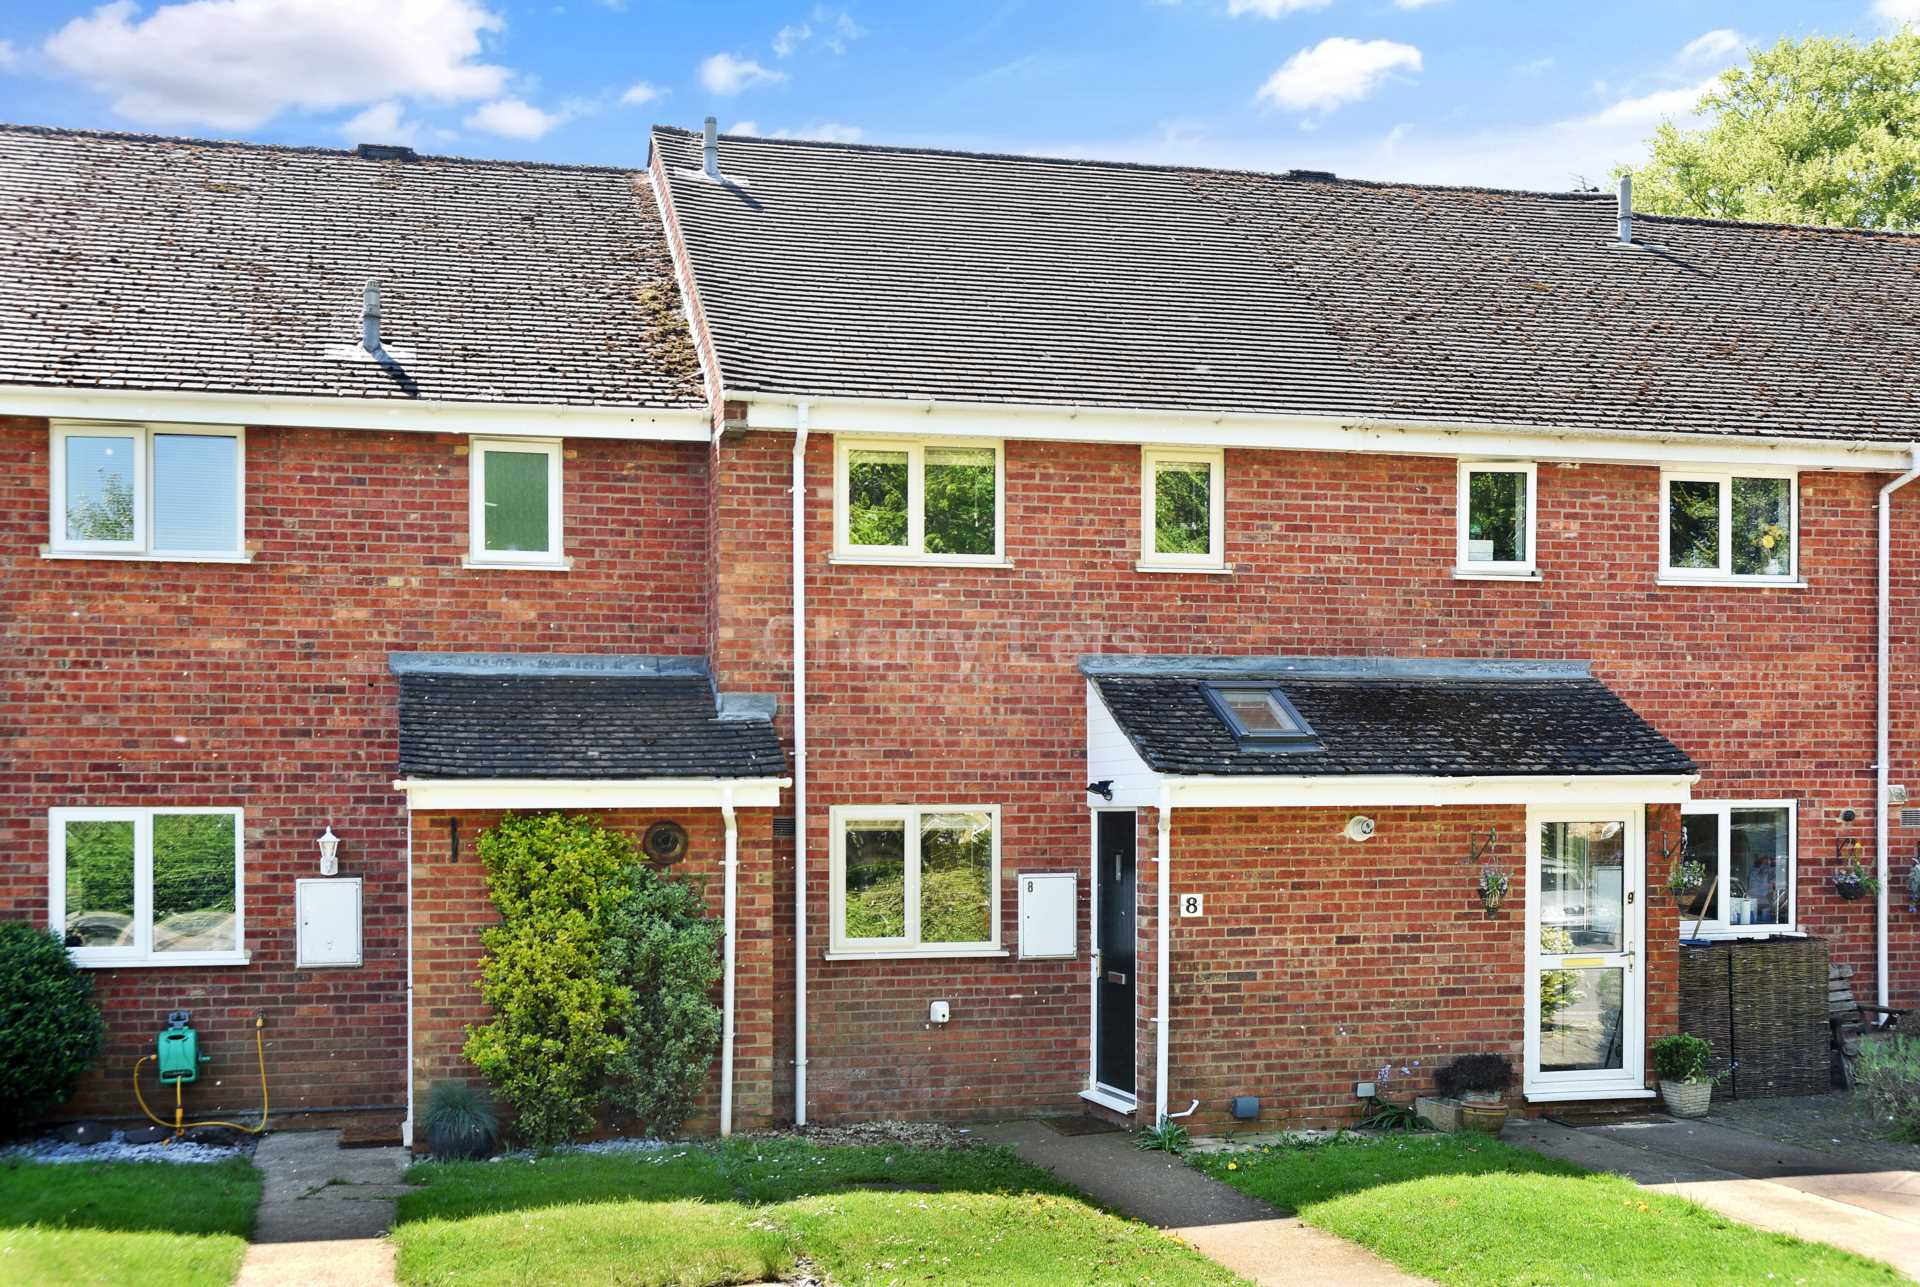 3 bed terraced house to rent in Keytes Close, Adderbury, OX17 - Property Image 1